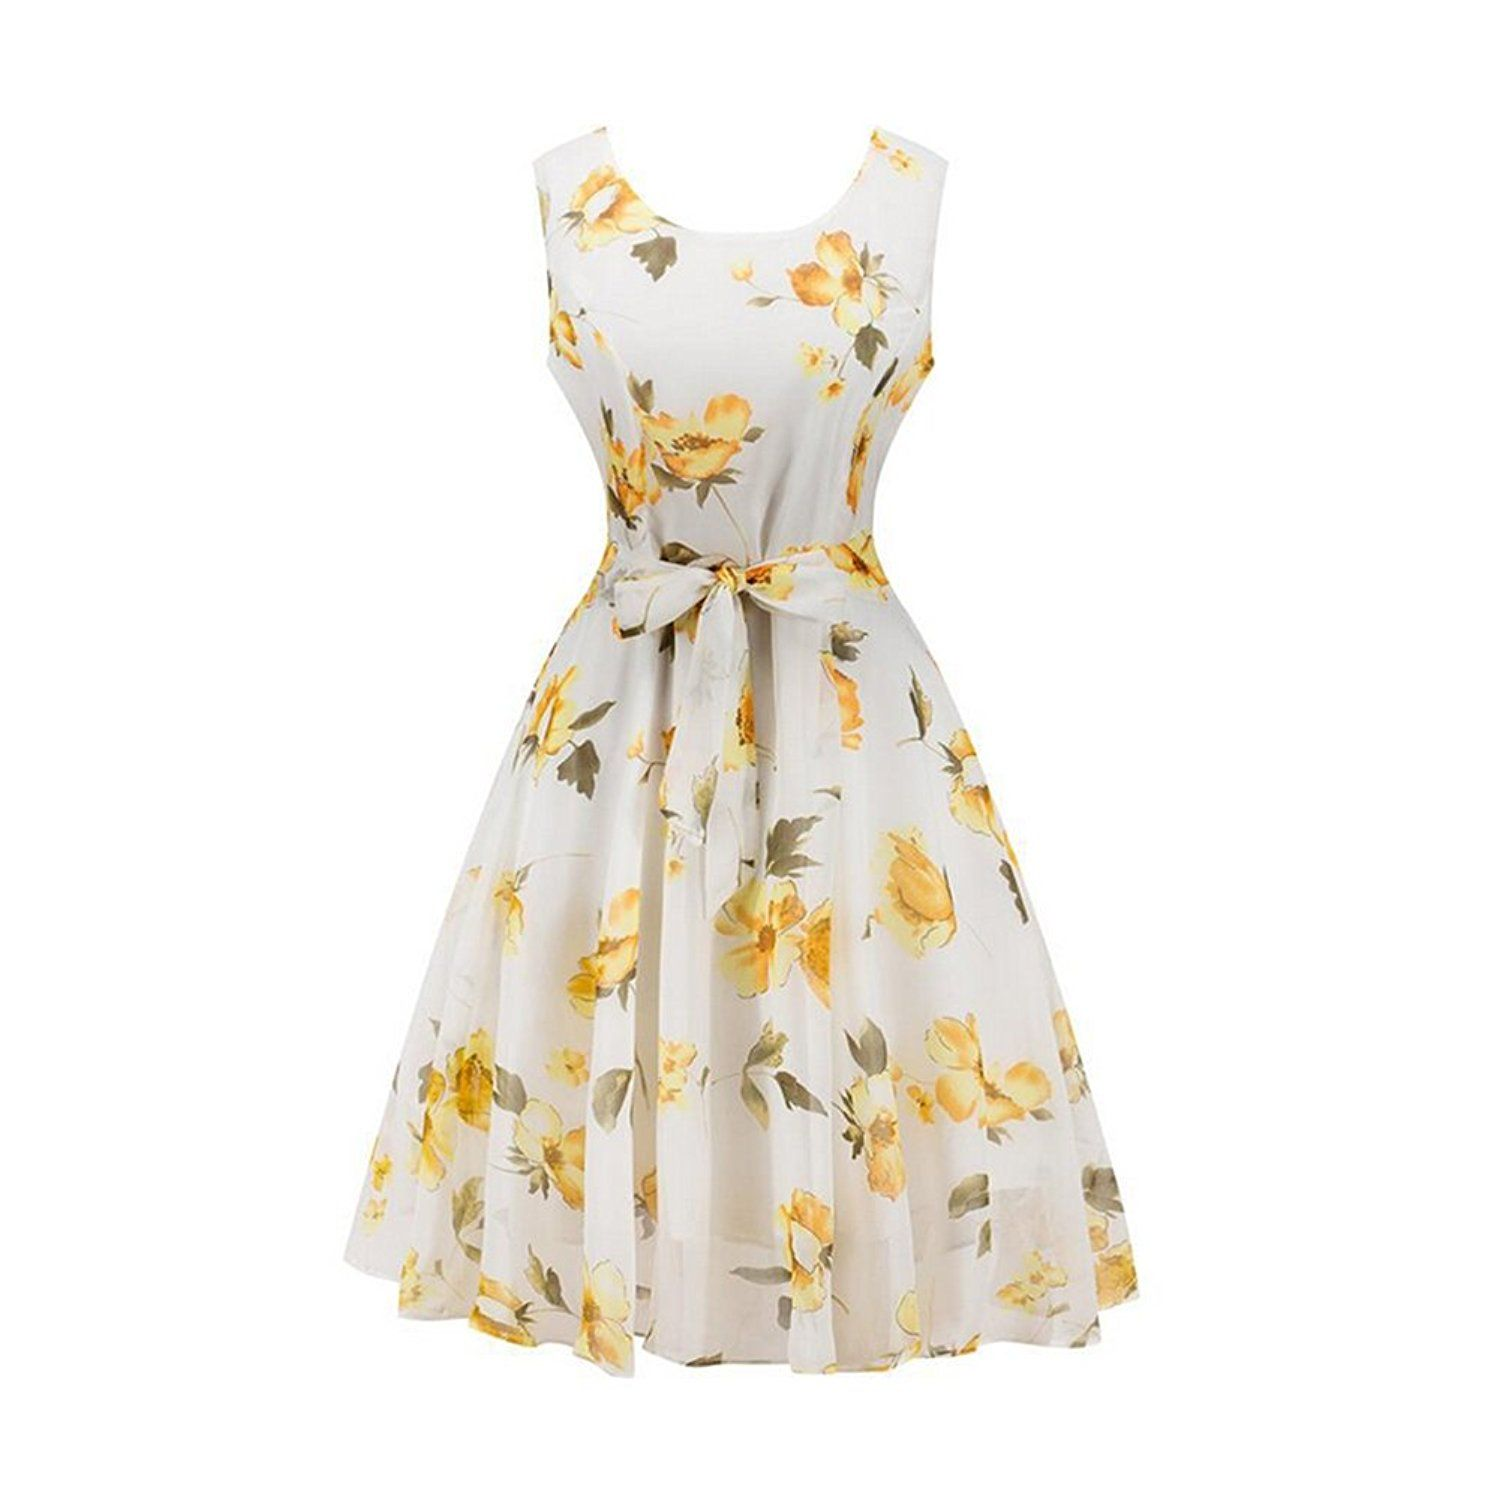 6a4101a048eb Kha Zix Women s Sleeveless Vintage Floral Flarel Audrey Style Cocktail  Retro Swing Party Midi Dress at Amazon Women s Clothing store